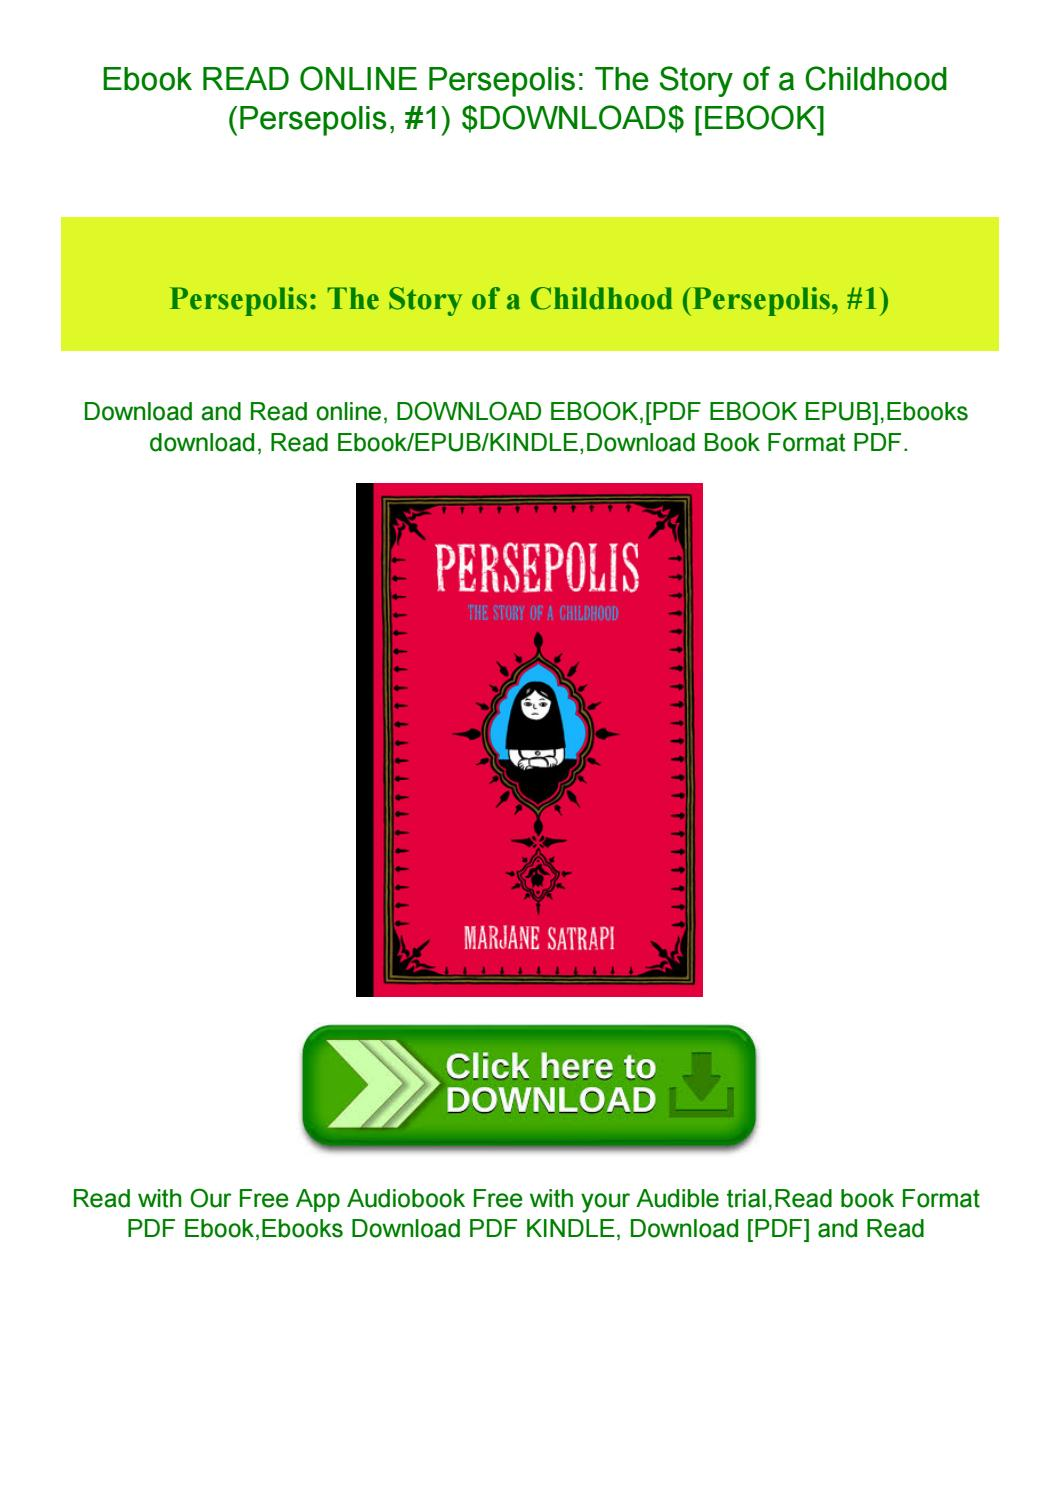 Ebook Read Online Persepolis The Story Of A Childhood Persepolis 1 Download Ebook By Sylvia Newkirk Issuu